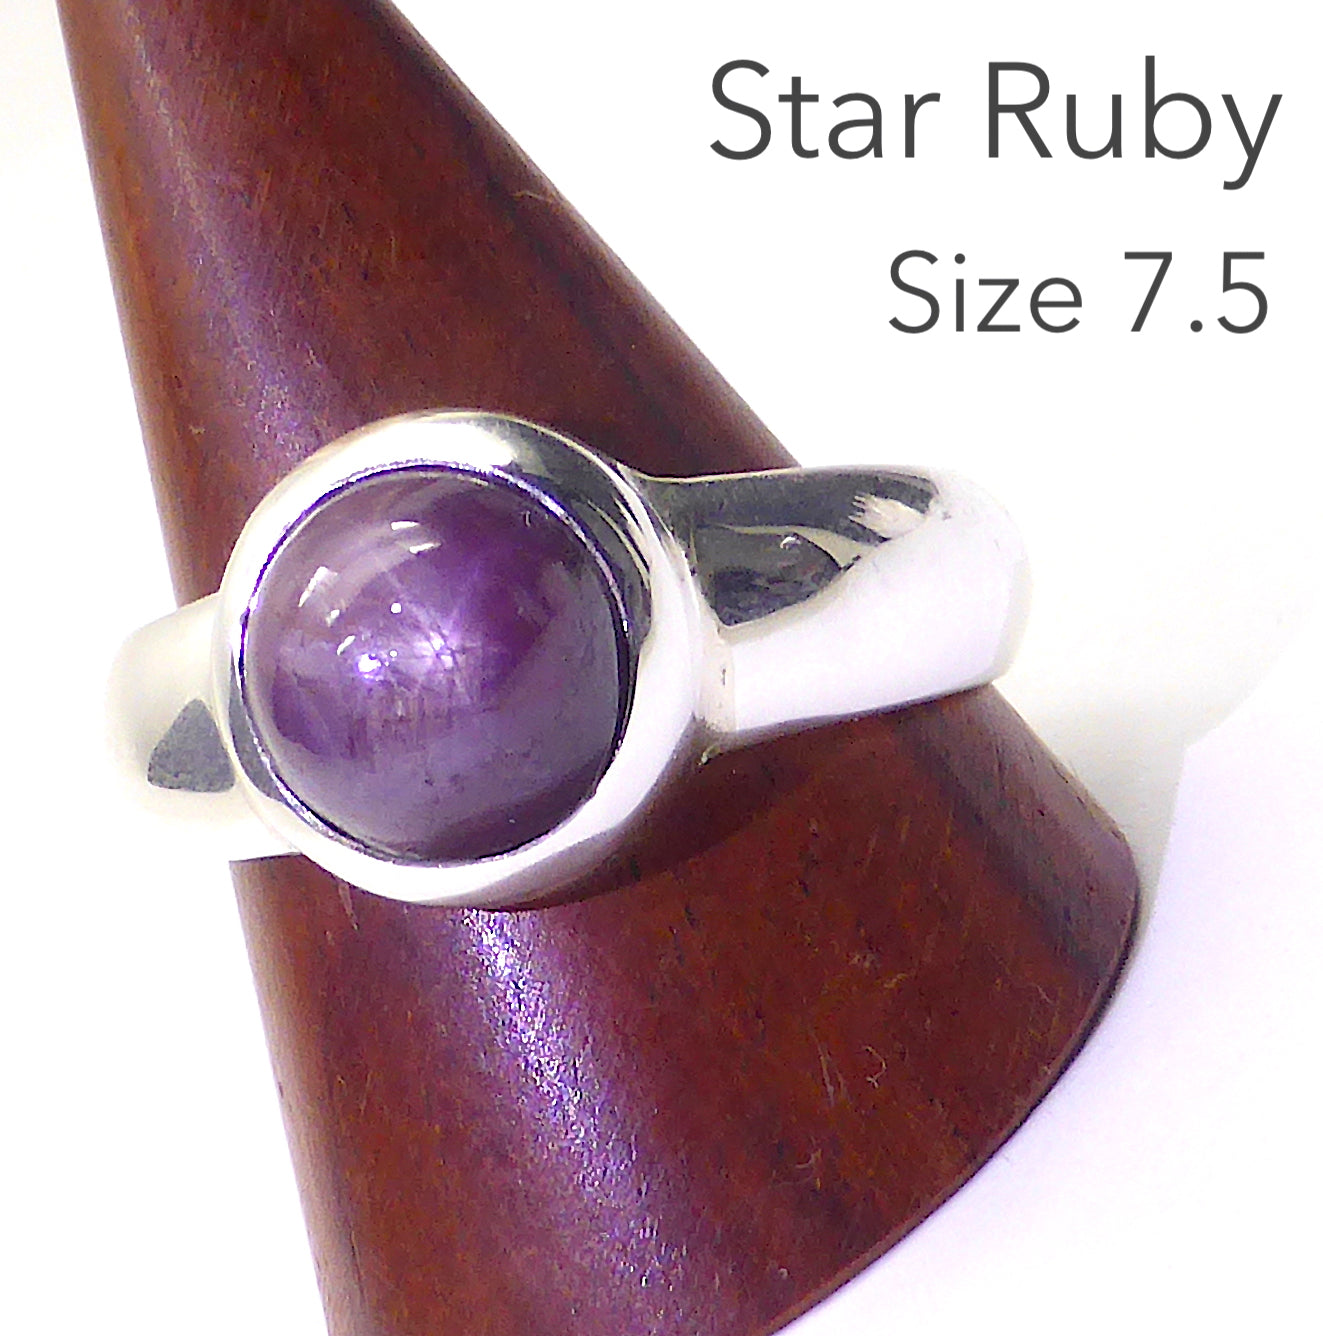 Star Ruby Ring | Genuine stone | Lovely deep red | clear star | 925 Sterling Silver | US Size 7.5  | Leo Star Stone | Crystal Heart Melbourne Australia since 1986